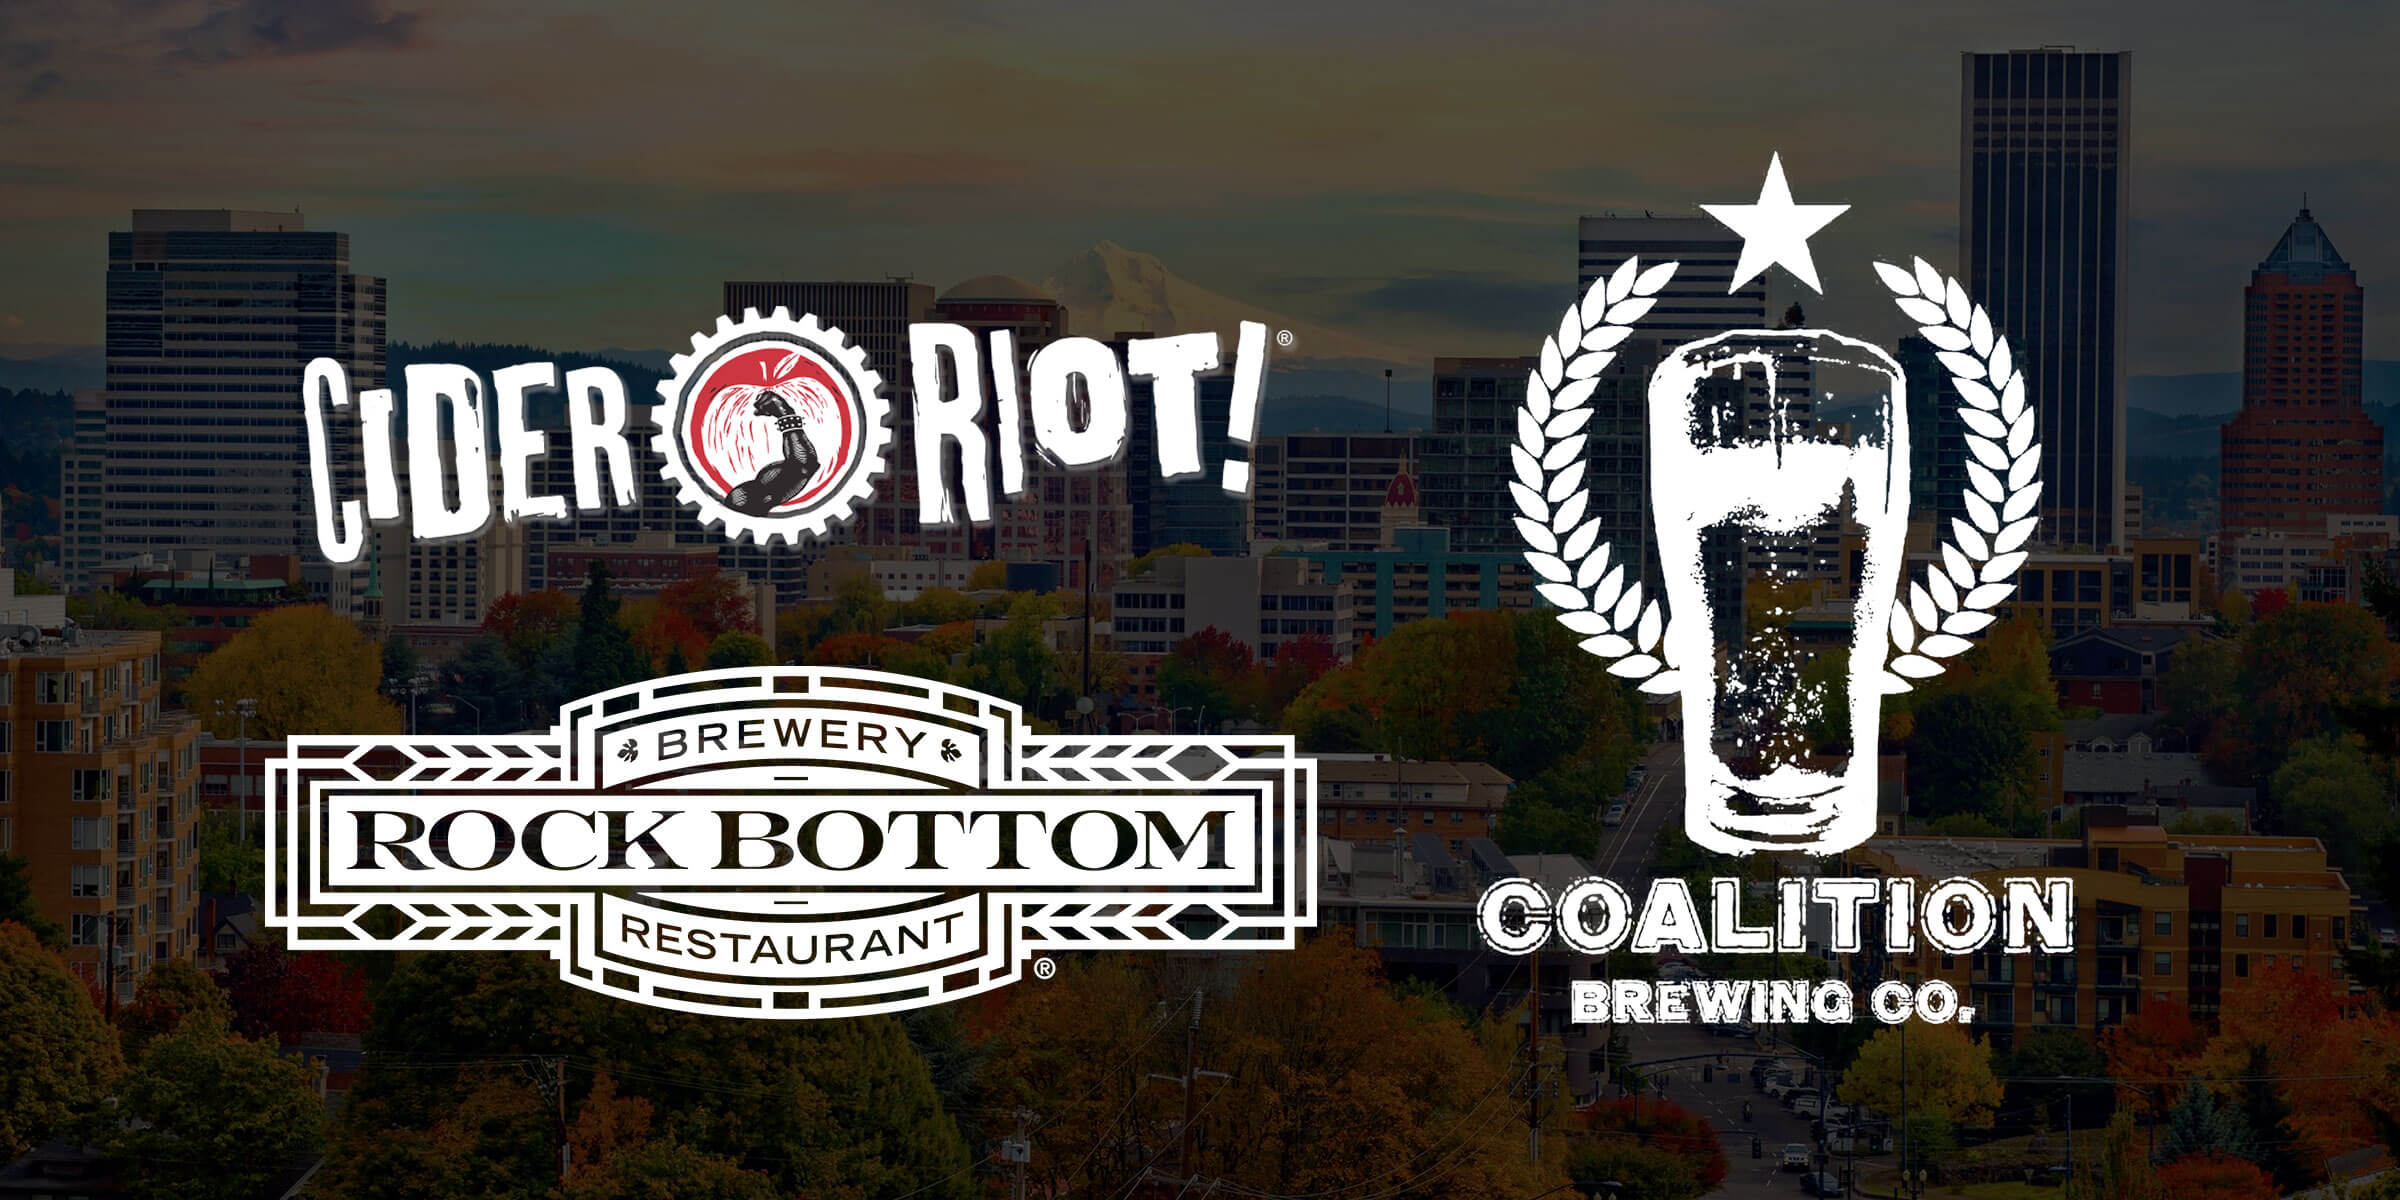 Portland, Oregon's brewery closures continued as Cider Riot, Rock Bottom Restaurant and Brewery, and Coalition Brewing announced plans to close in the city.